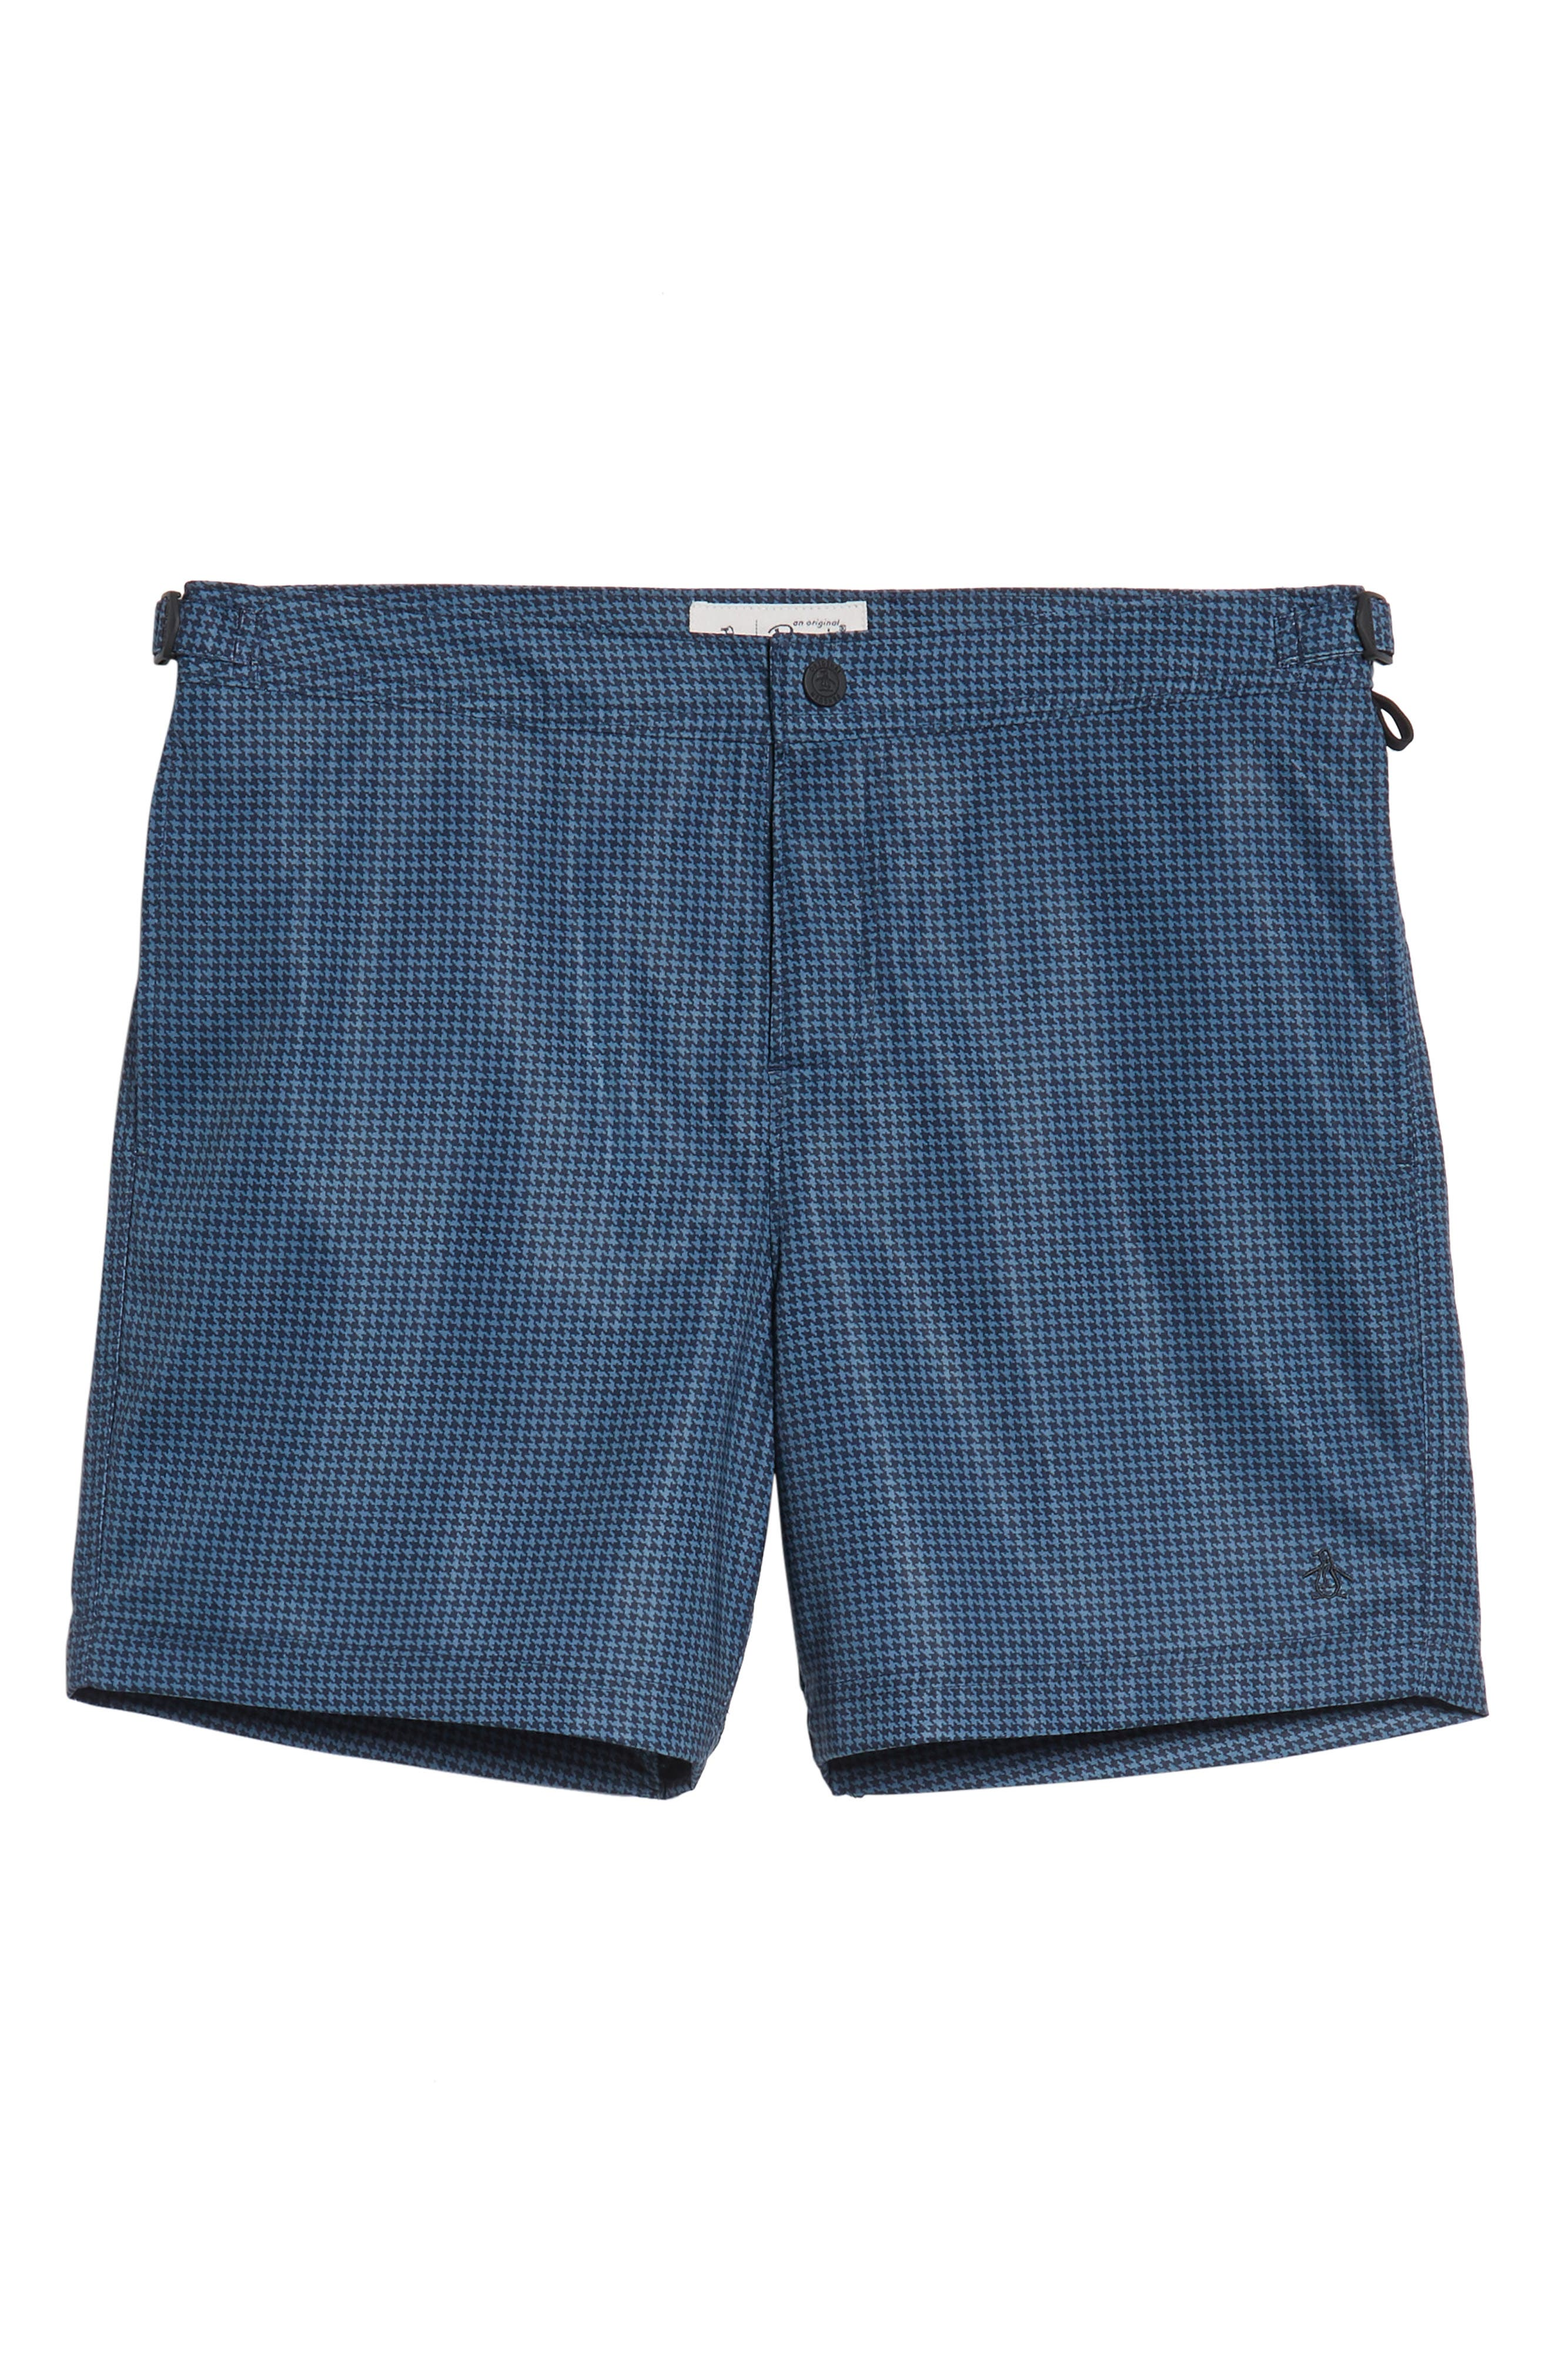 Houndstooth Stretch Volley Board Shorts,                             Alternate thumbnail 6, color,